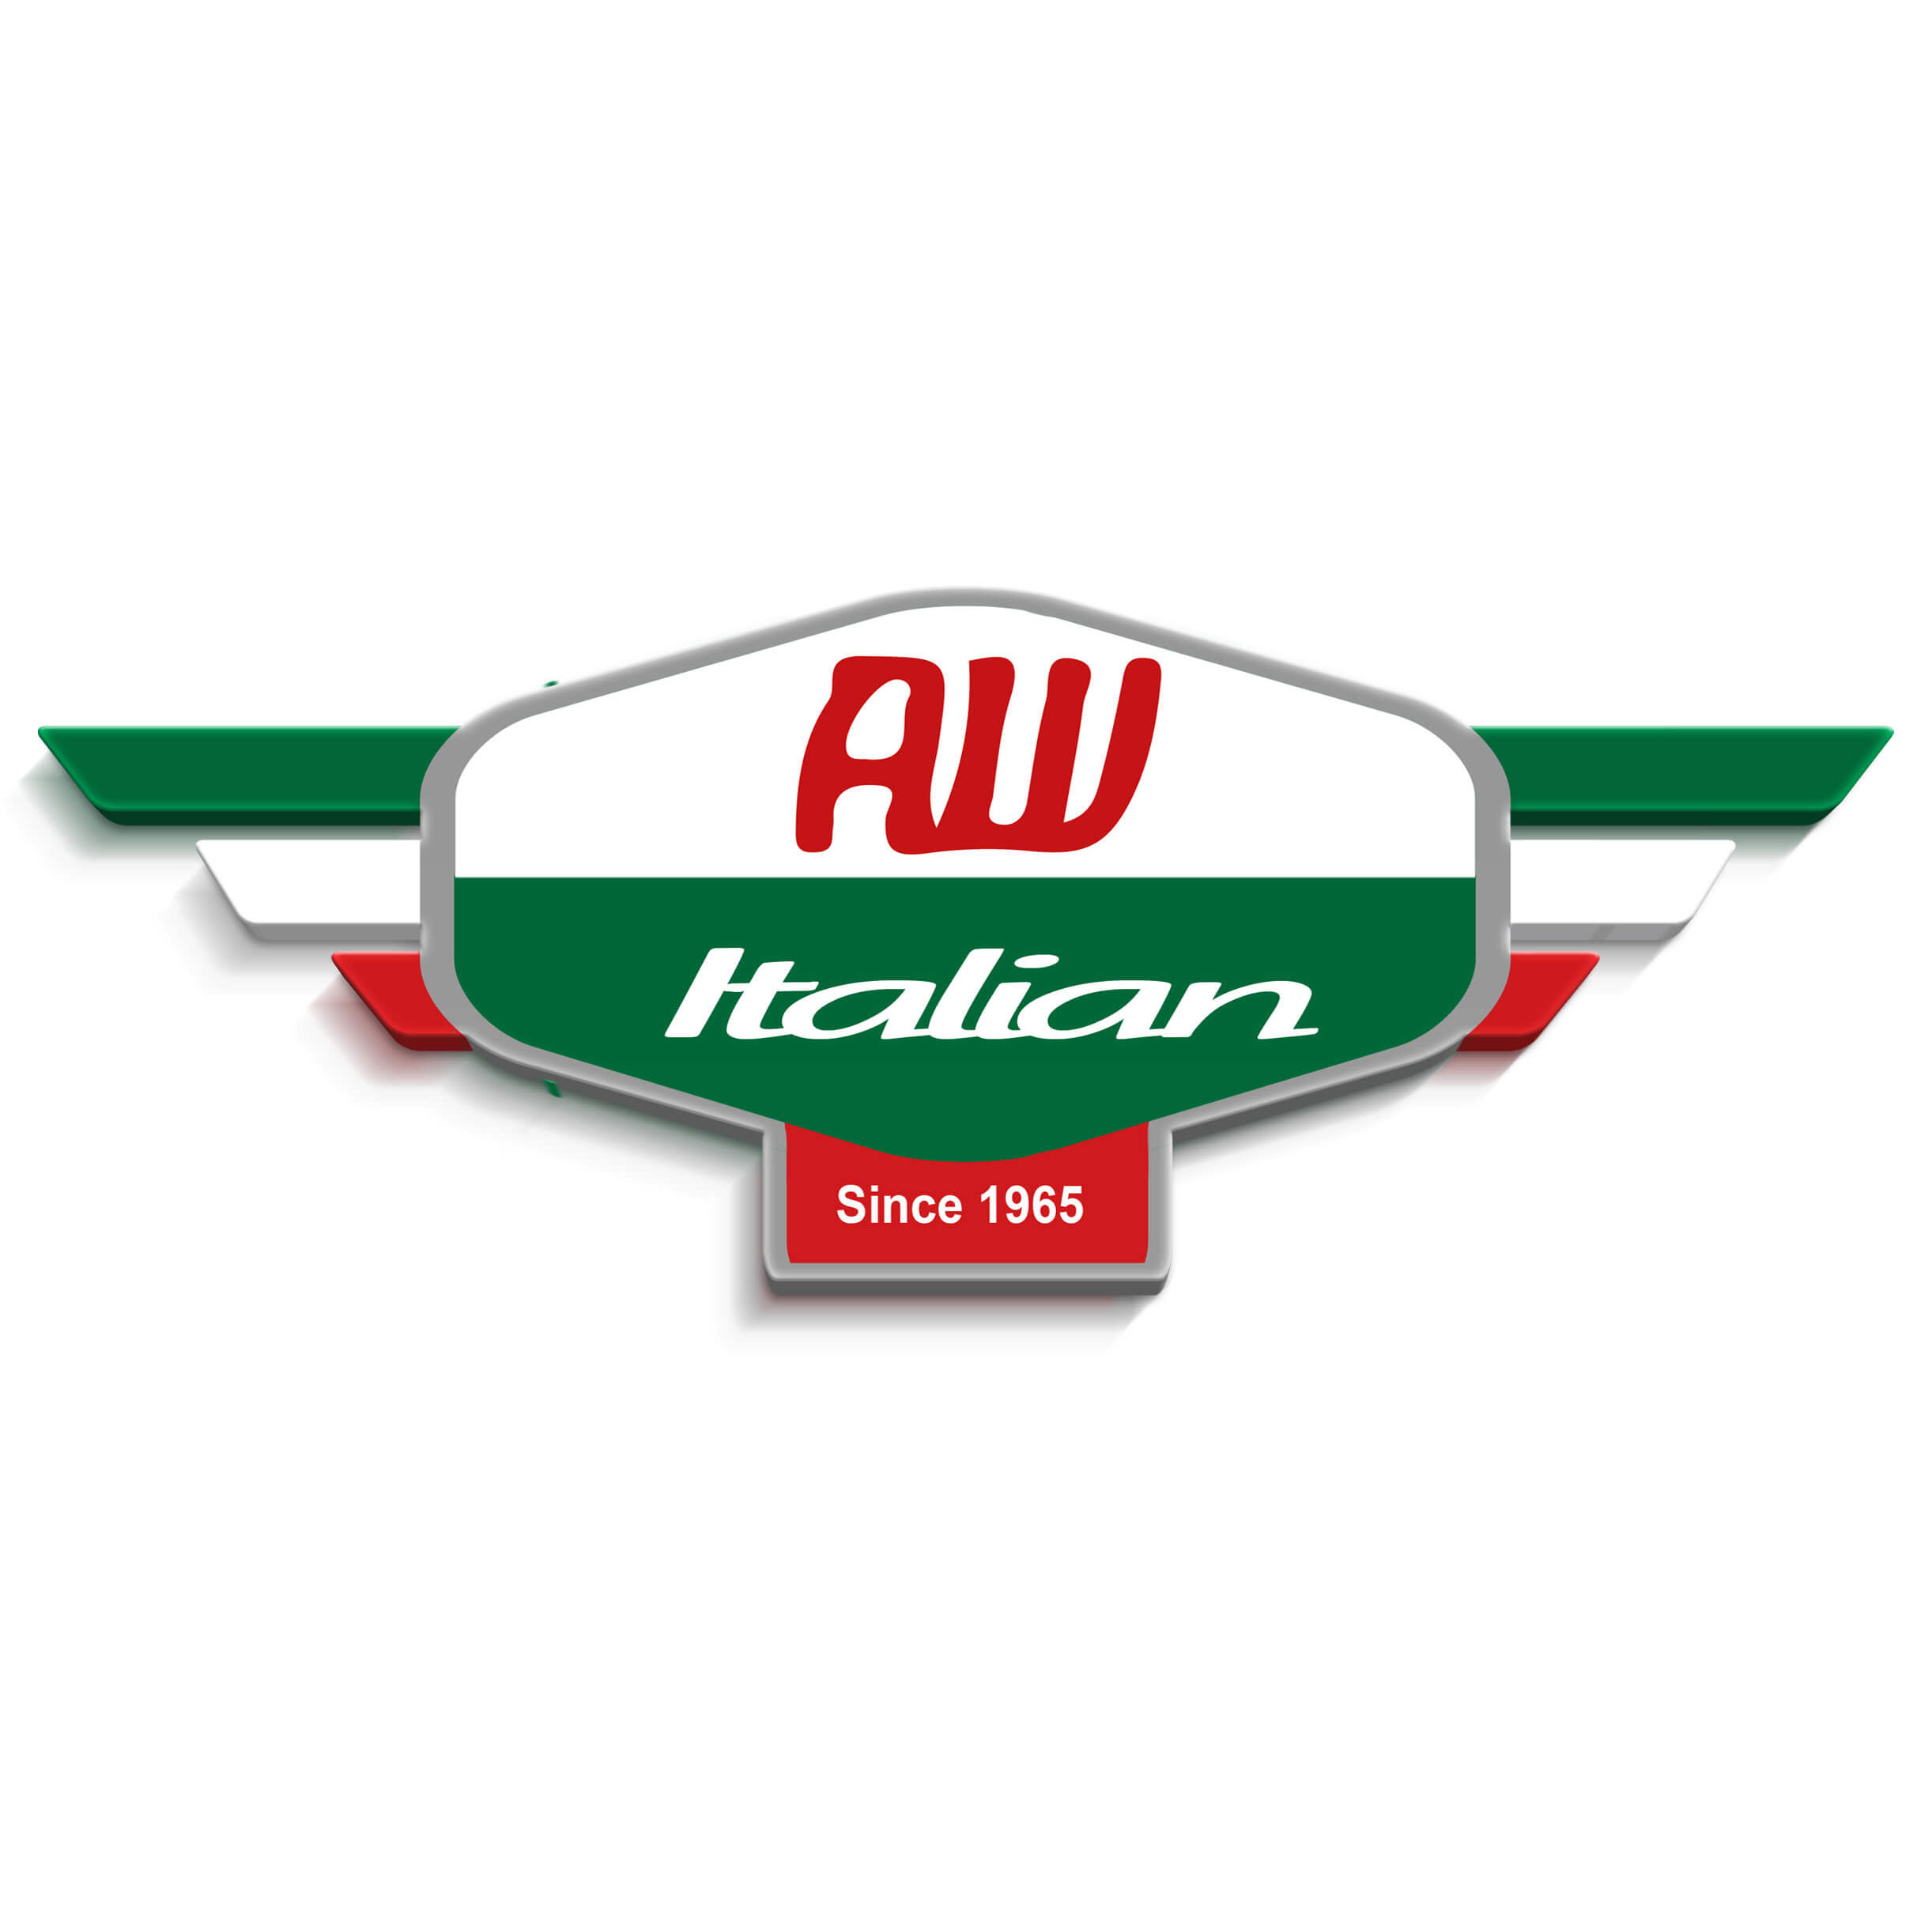 AW Imported Auto Parts & Service image 0